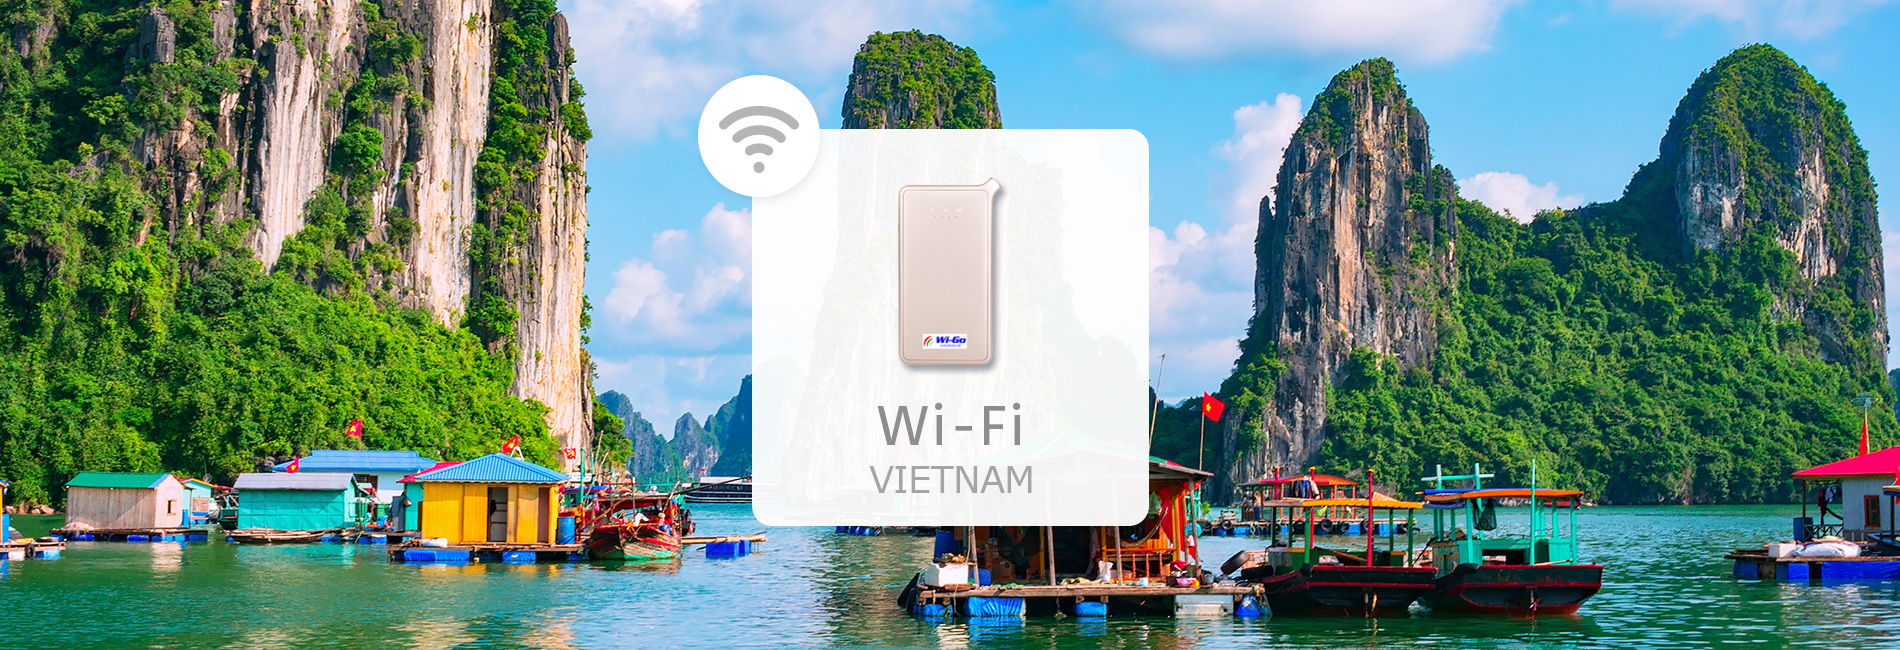 Vietnam 4G Portable Wi-Fi Rental (Pick-Up at Taiwan Taoyuan International Airport or Delivery to Taiwan) Image